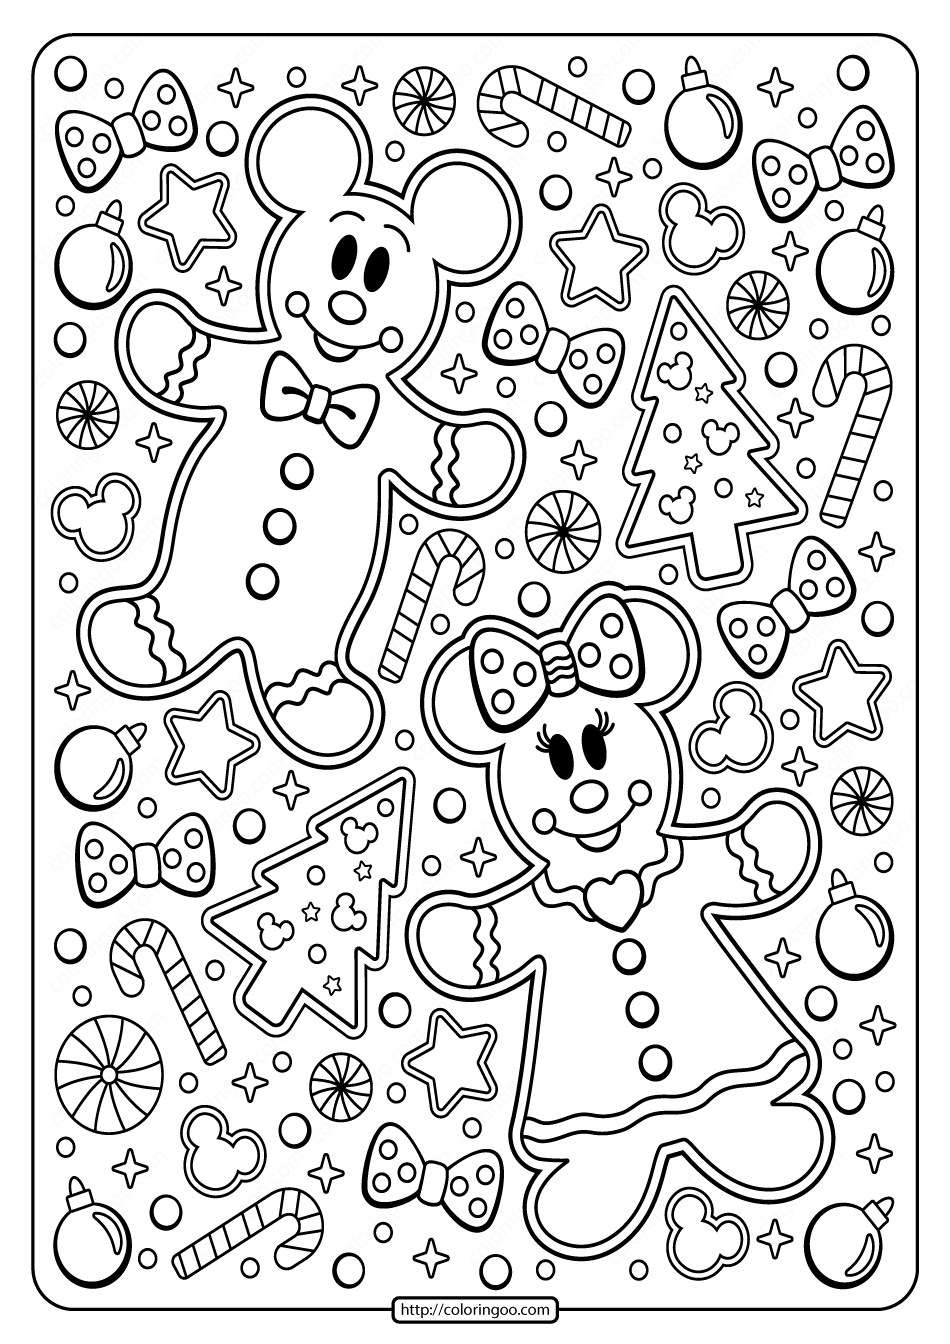 Mickey Minnie Mouse Holiday Coloring Page Kids Christmas Coloring Pages Christmas Coloring Pages Disney Coloring Pages [ 1344 x 950 Pixel ]